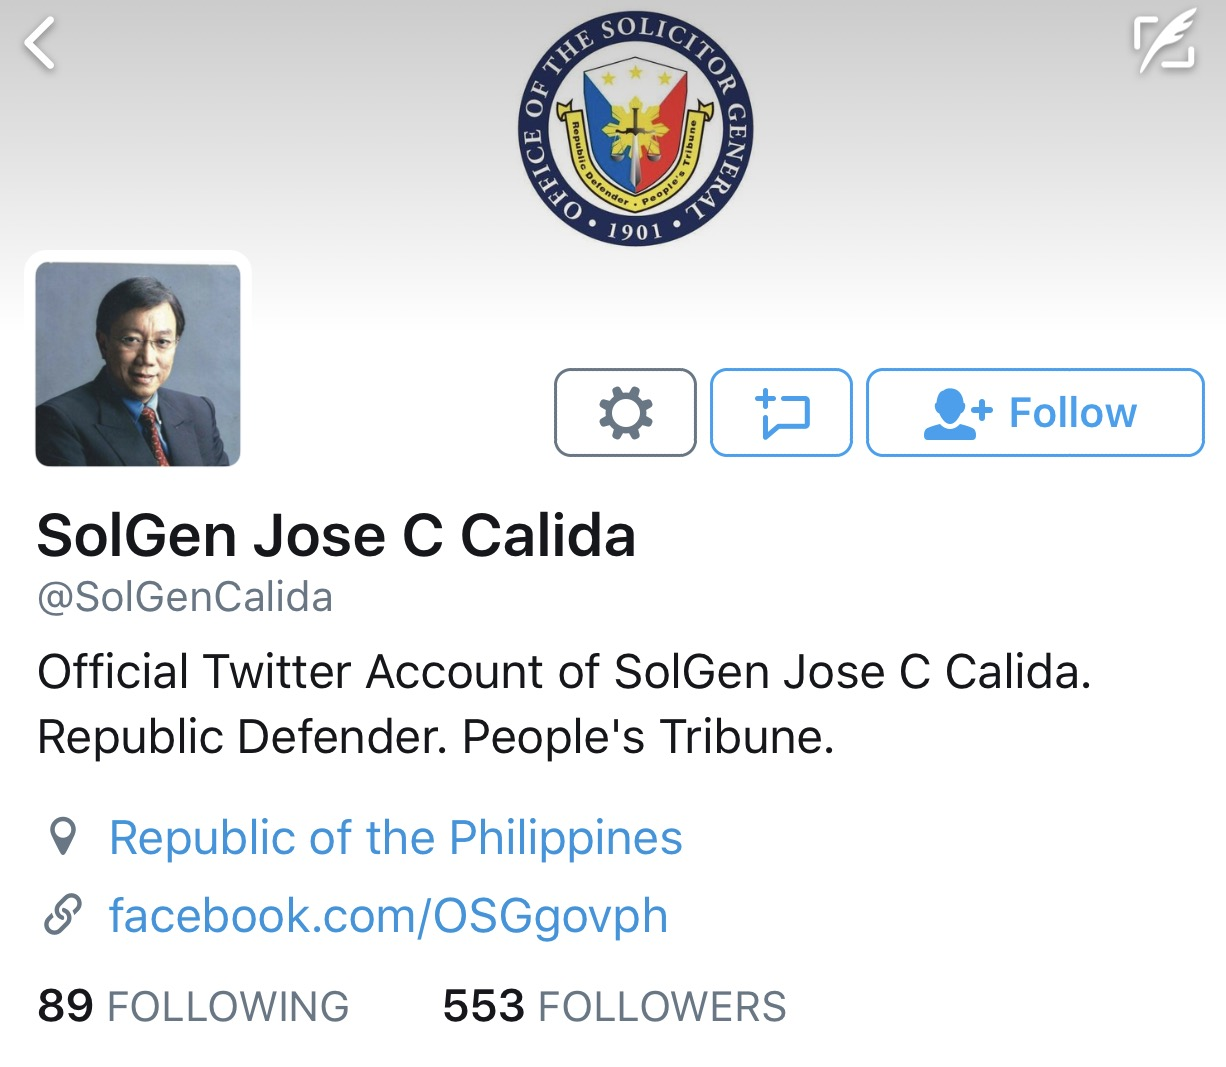 SolGen Jose Calida Taunts Senators Pangilinan and Hontiveros